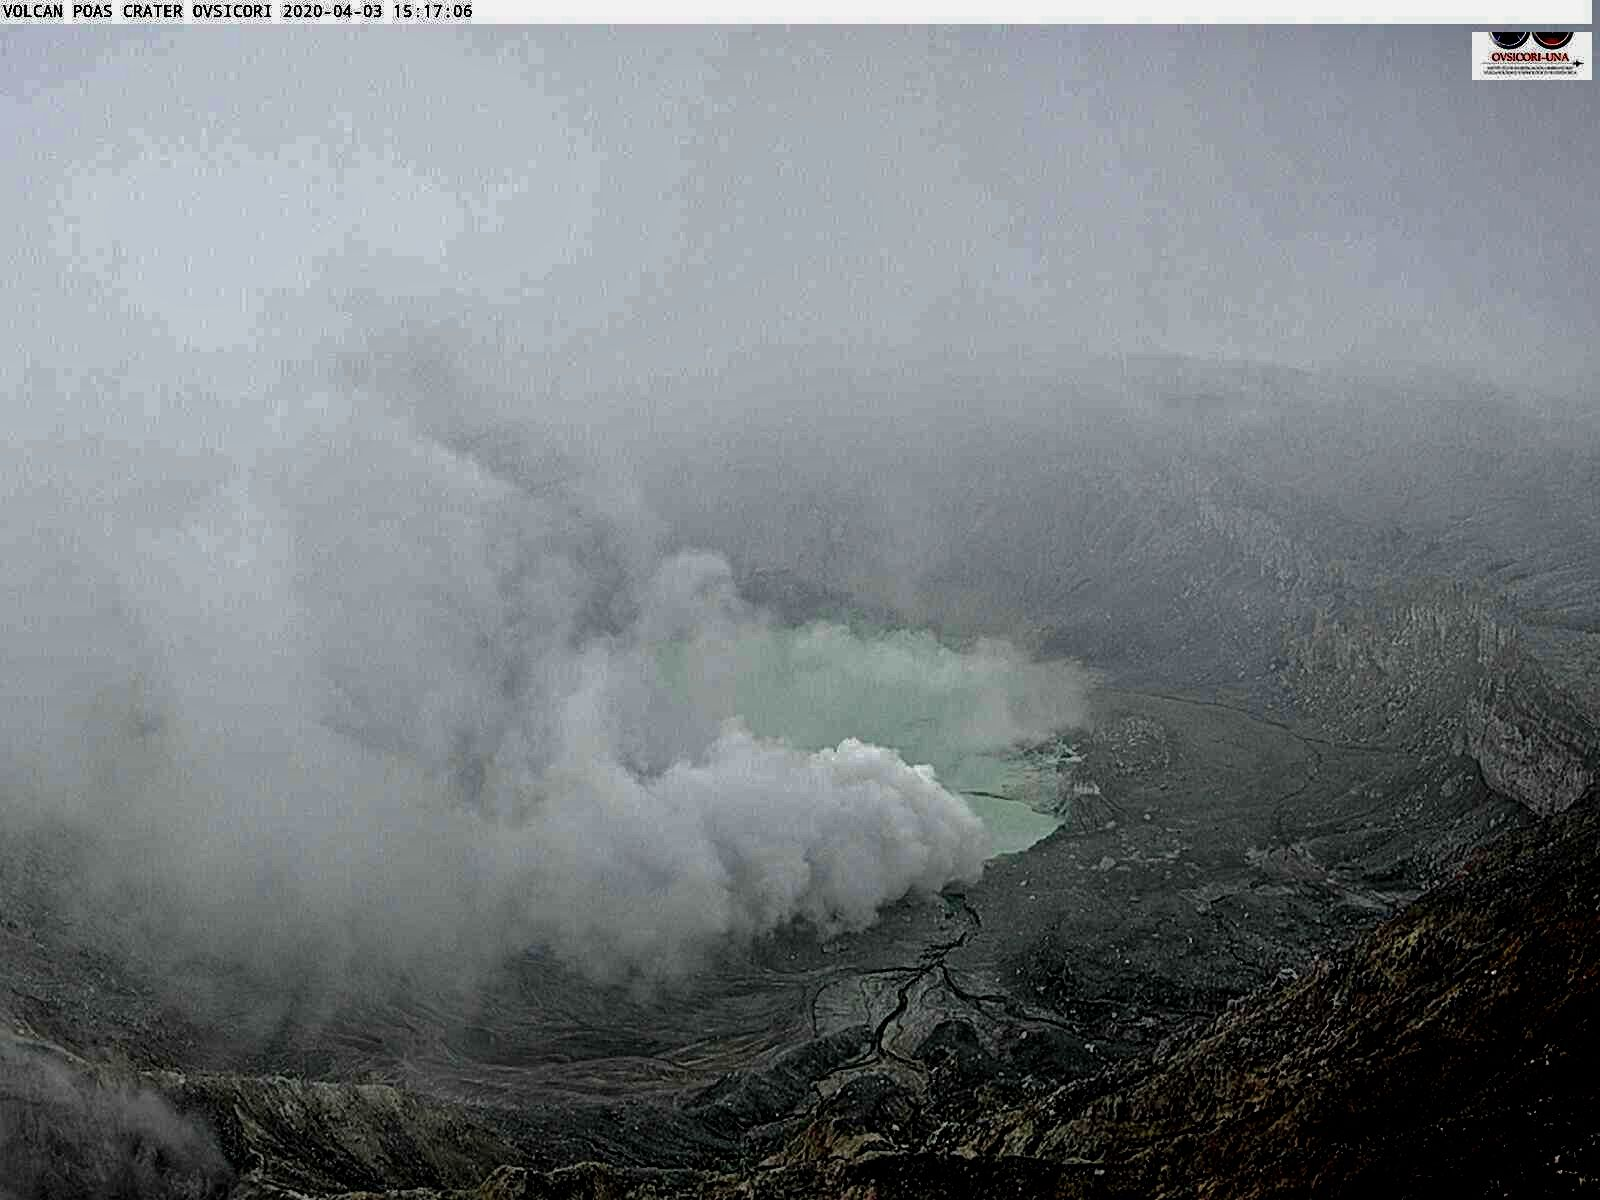 Poas - intense degassing on 03.04.2020, respectively at 11.38 am and 3.15 pm - Ovsicori webcam